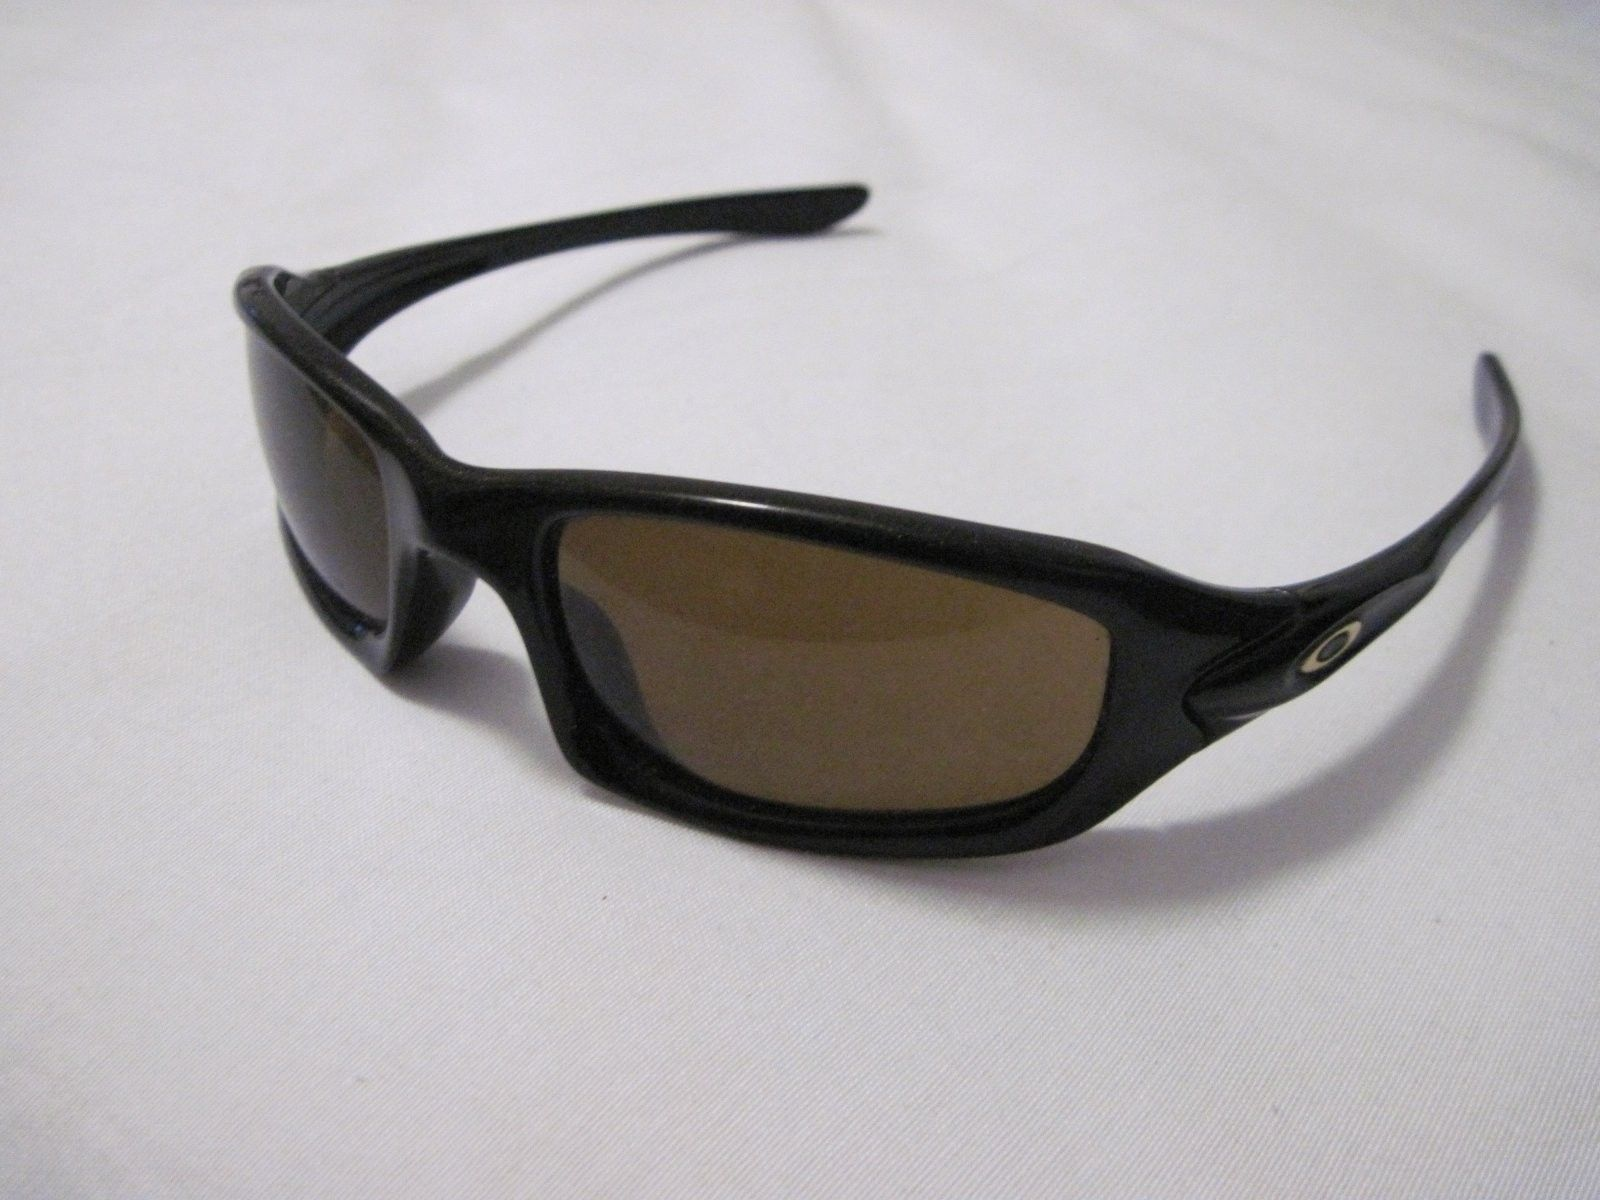 Need Help Identifying What Model Sunglasses - IMG_1408.JPG